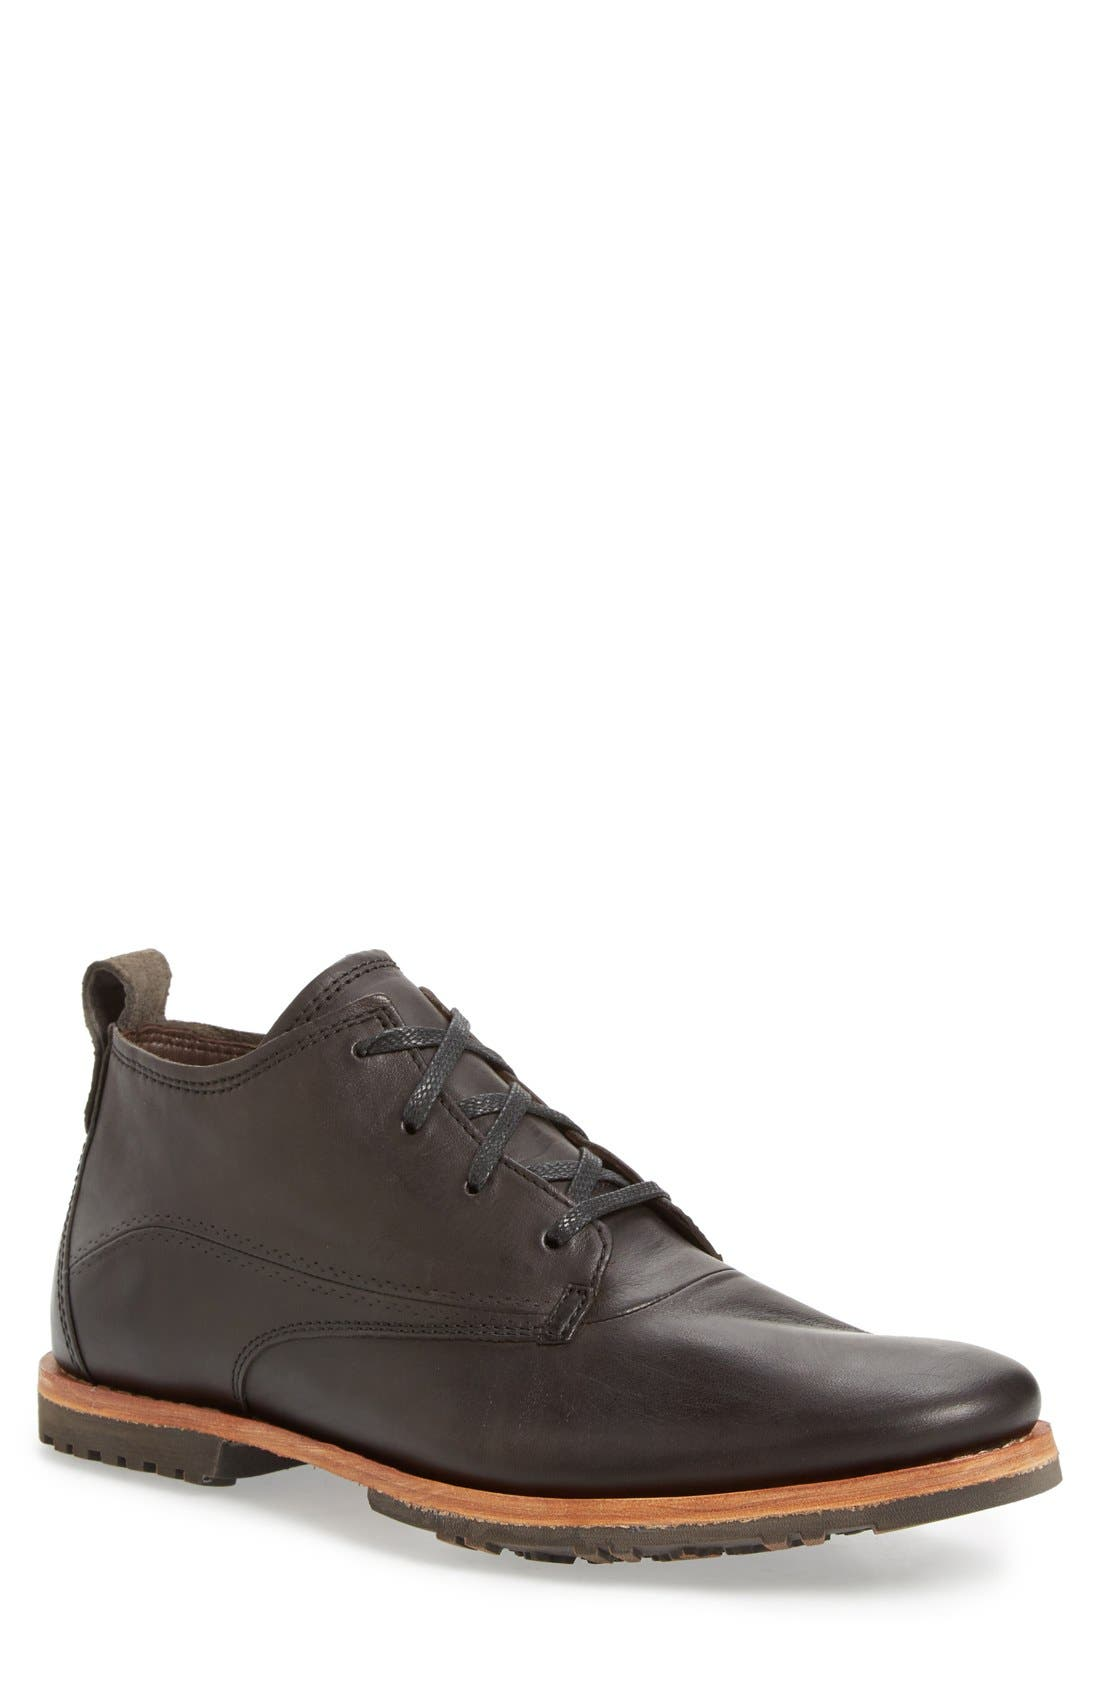 Alternate Image 1 Selected - Timberland 'Bardstown' Chukka Boot (Men)